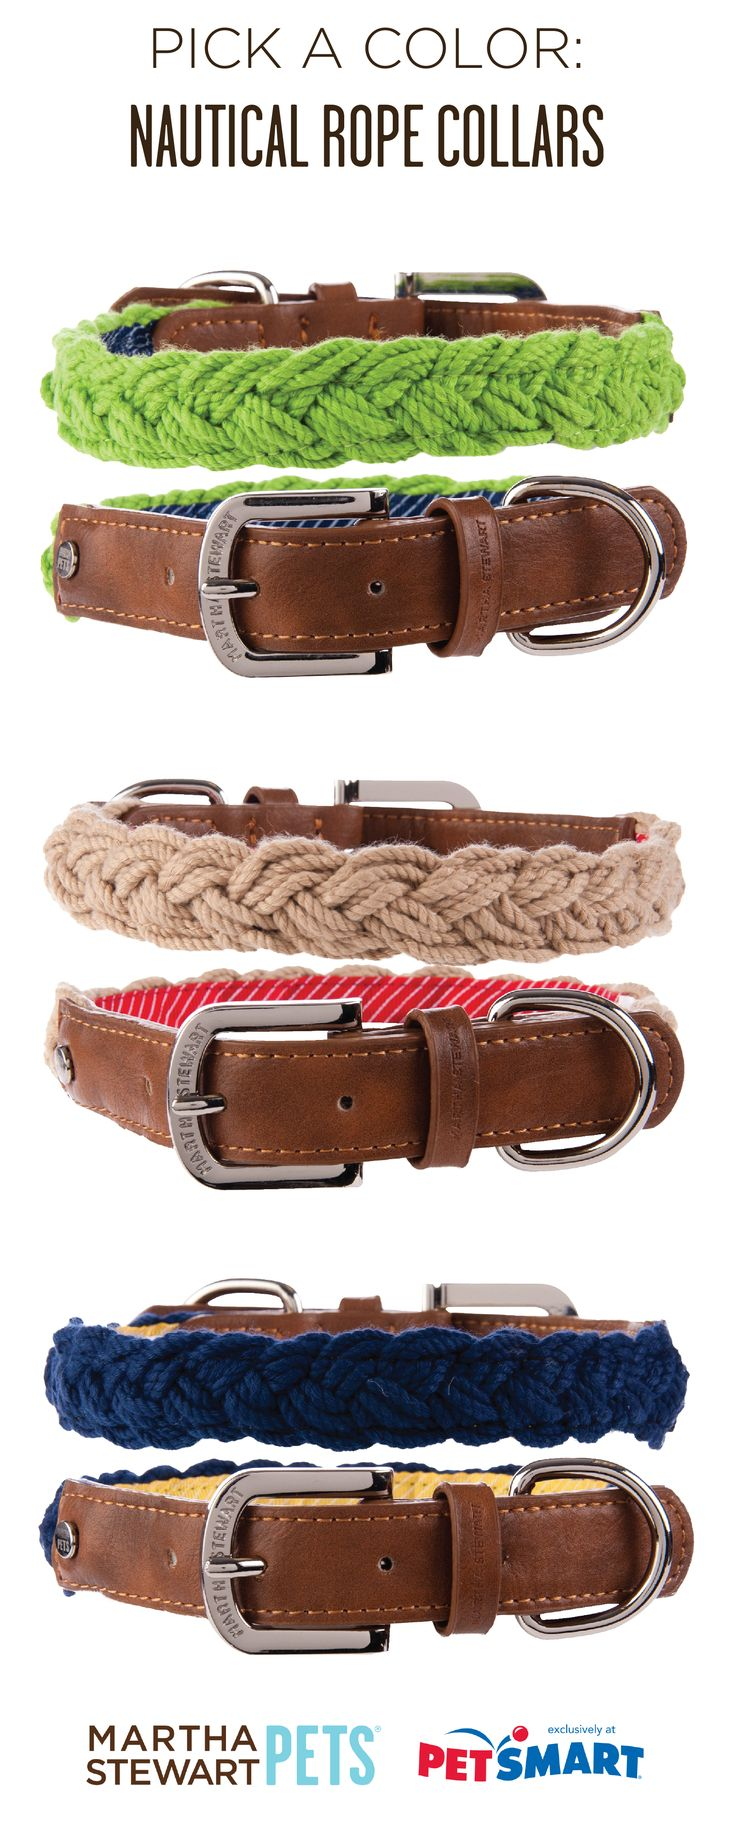 #MarthaStewartPets #nautical #rope dog collars - which color is your favorite? Only at #PetSmart.